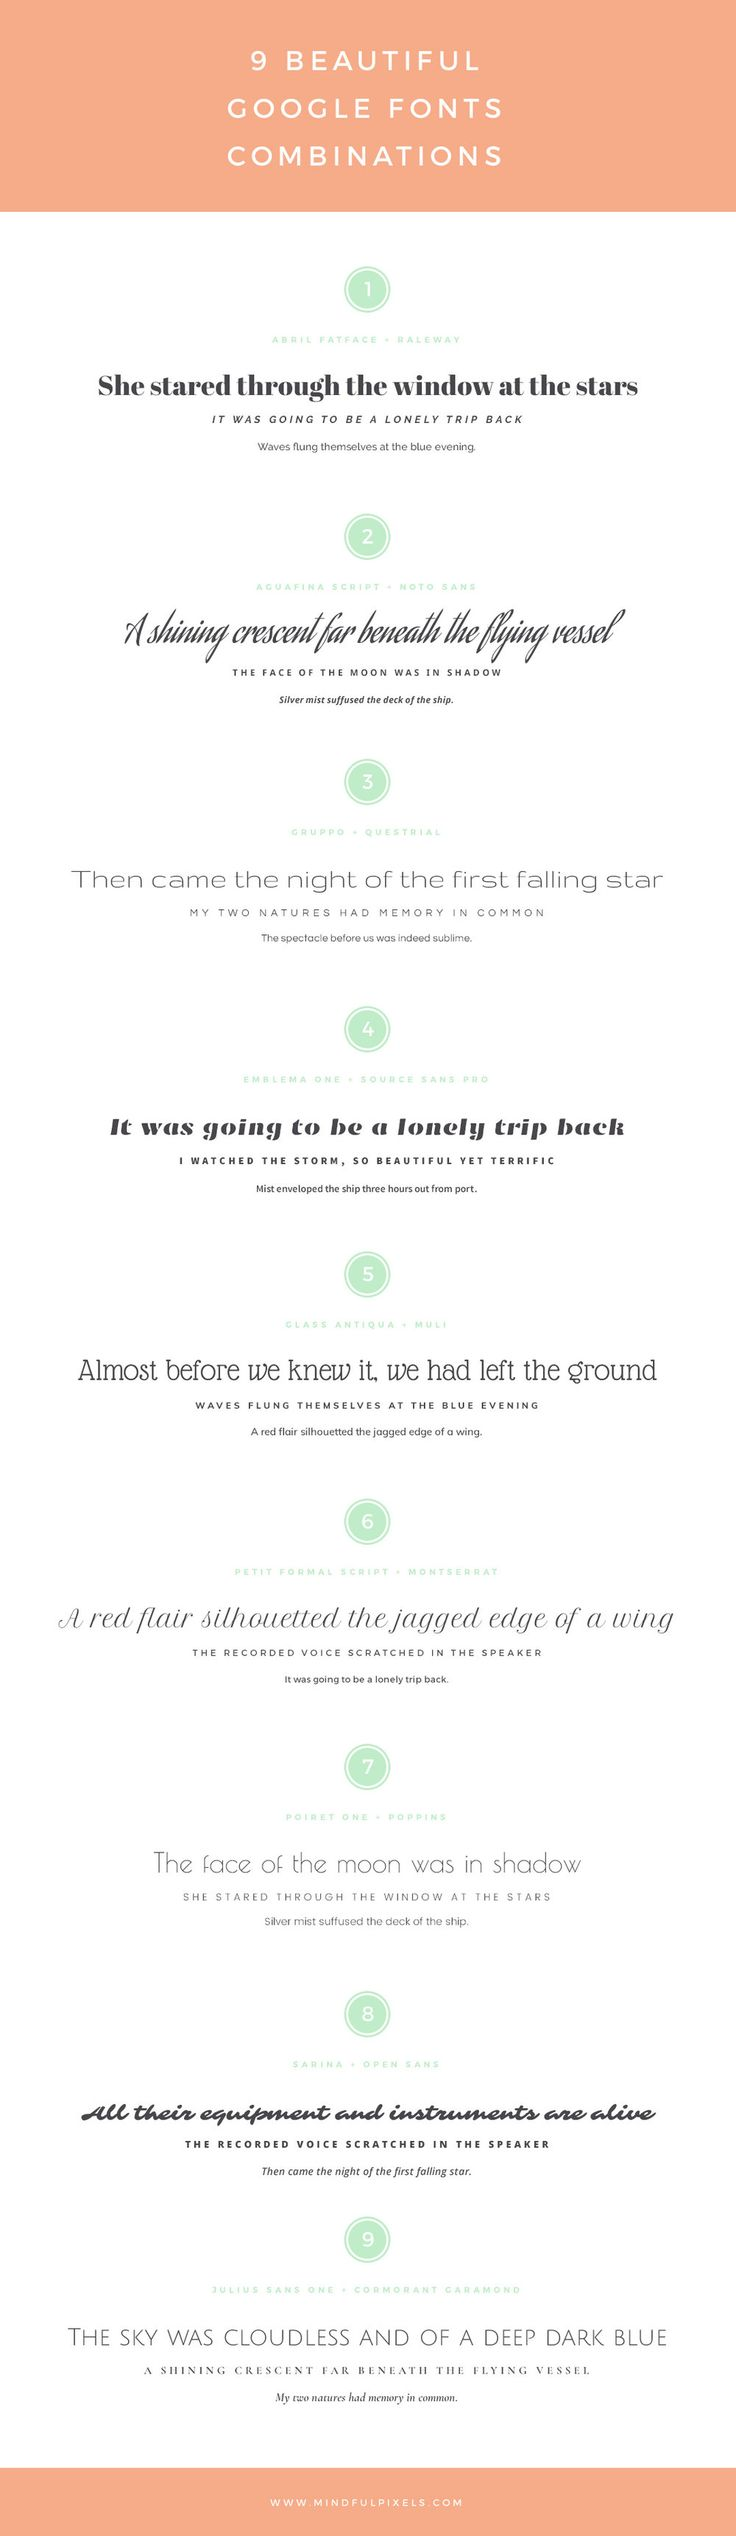 9 Beautiful Google font combinations